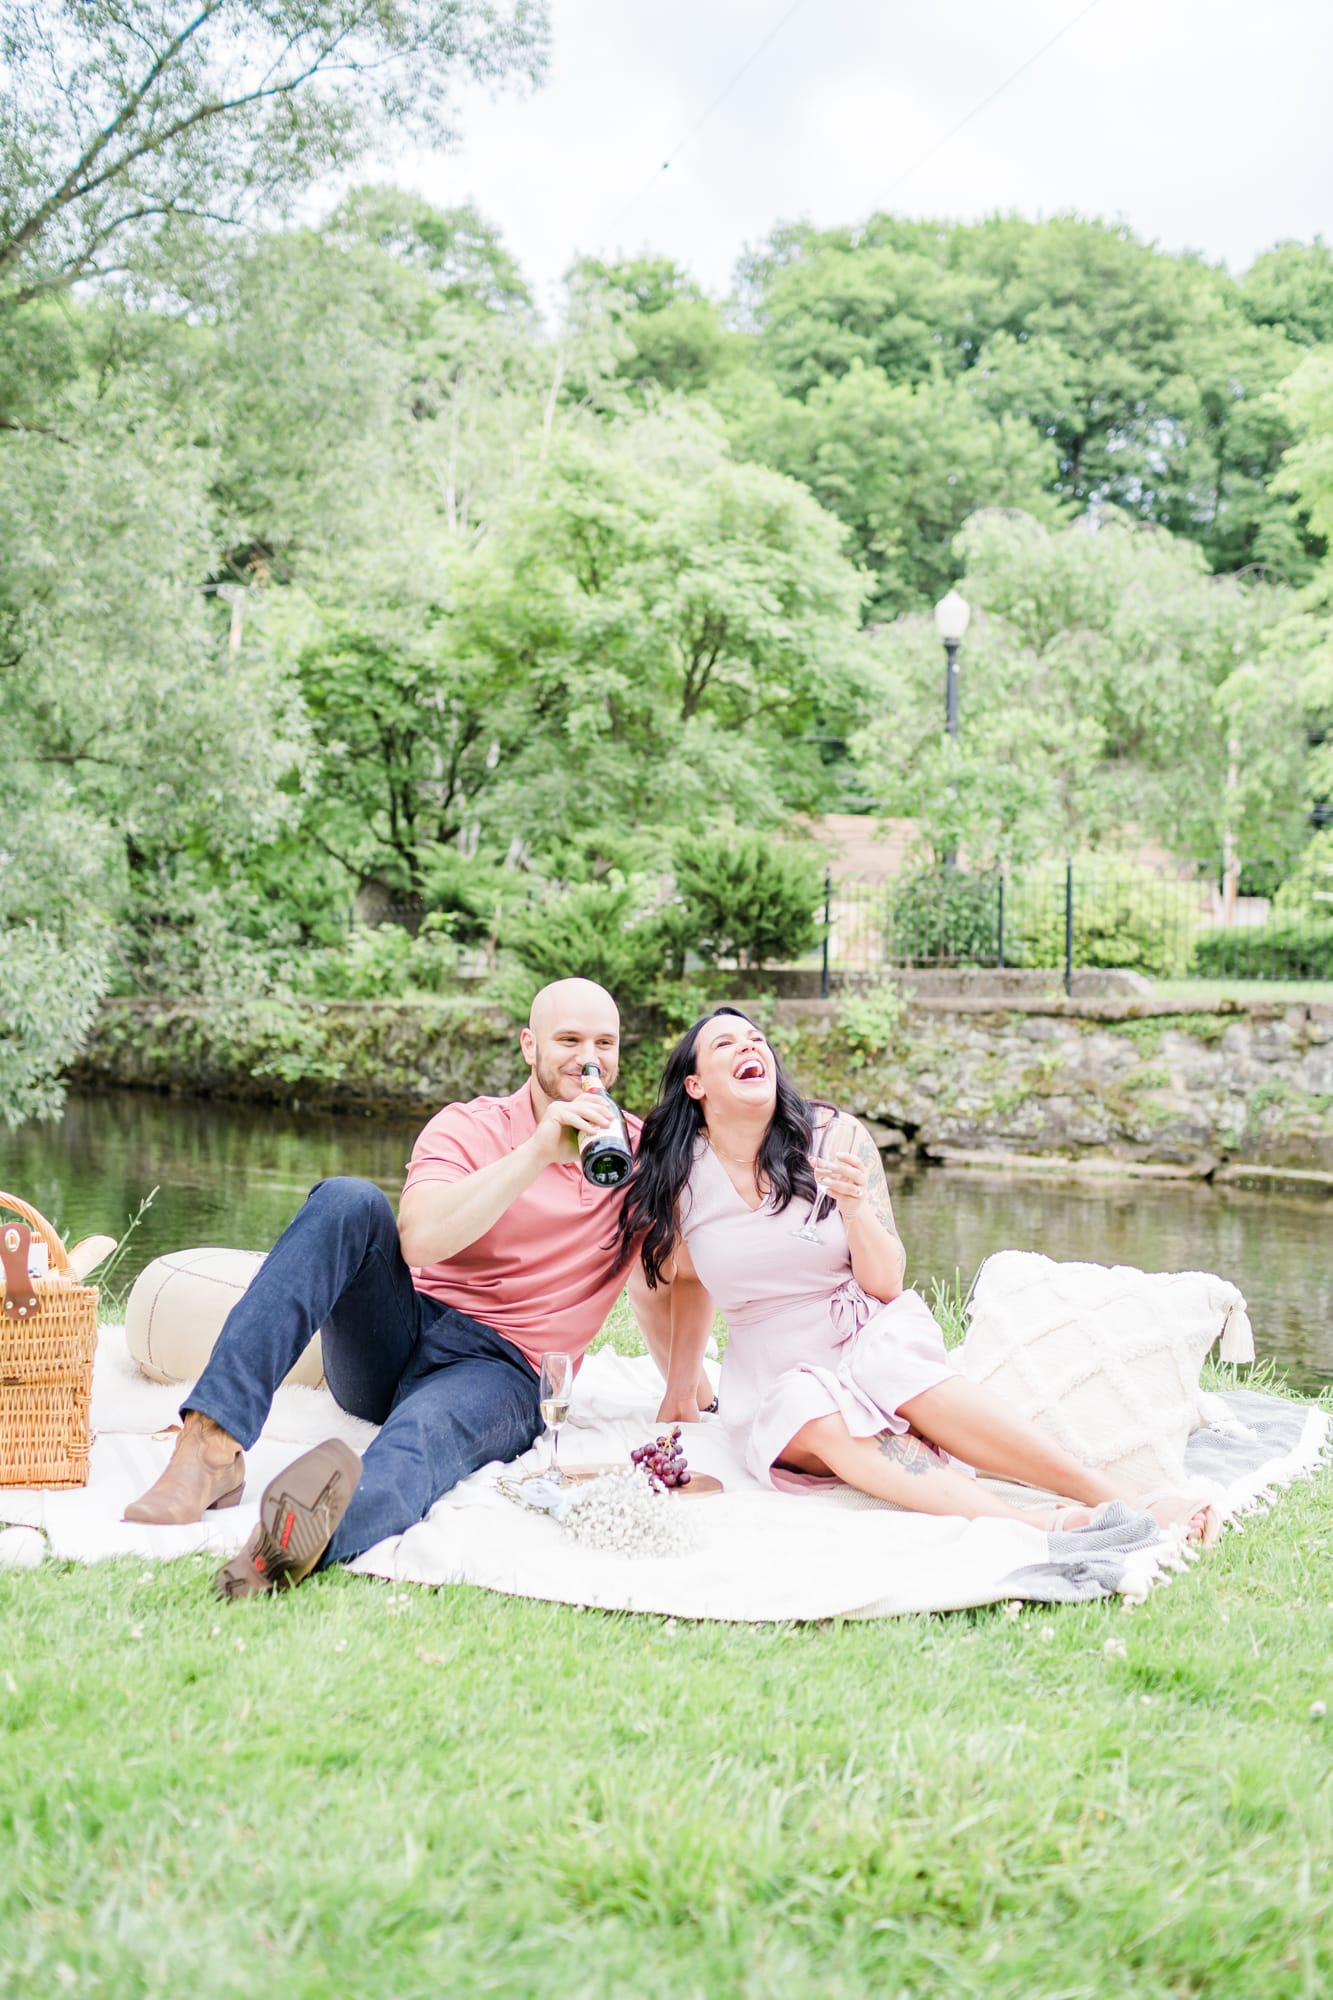 Engagement photos at Talleyrand Park featuring a picnic